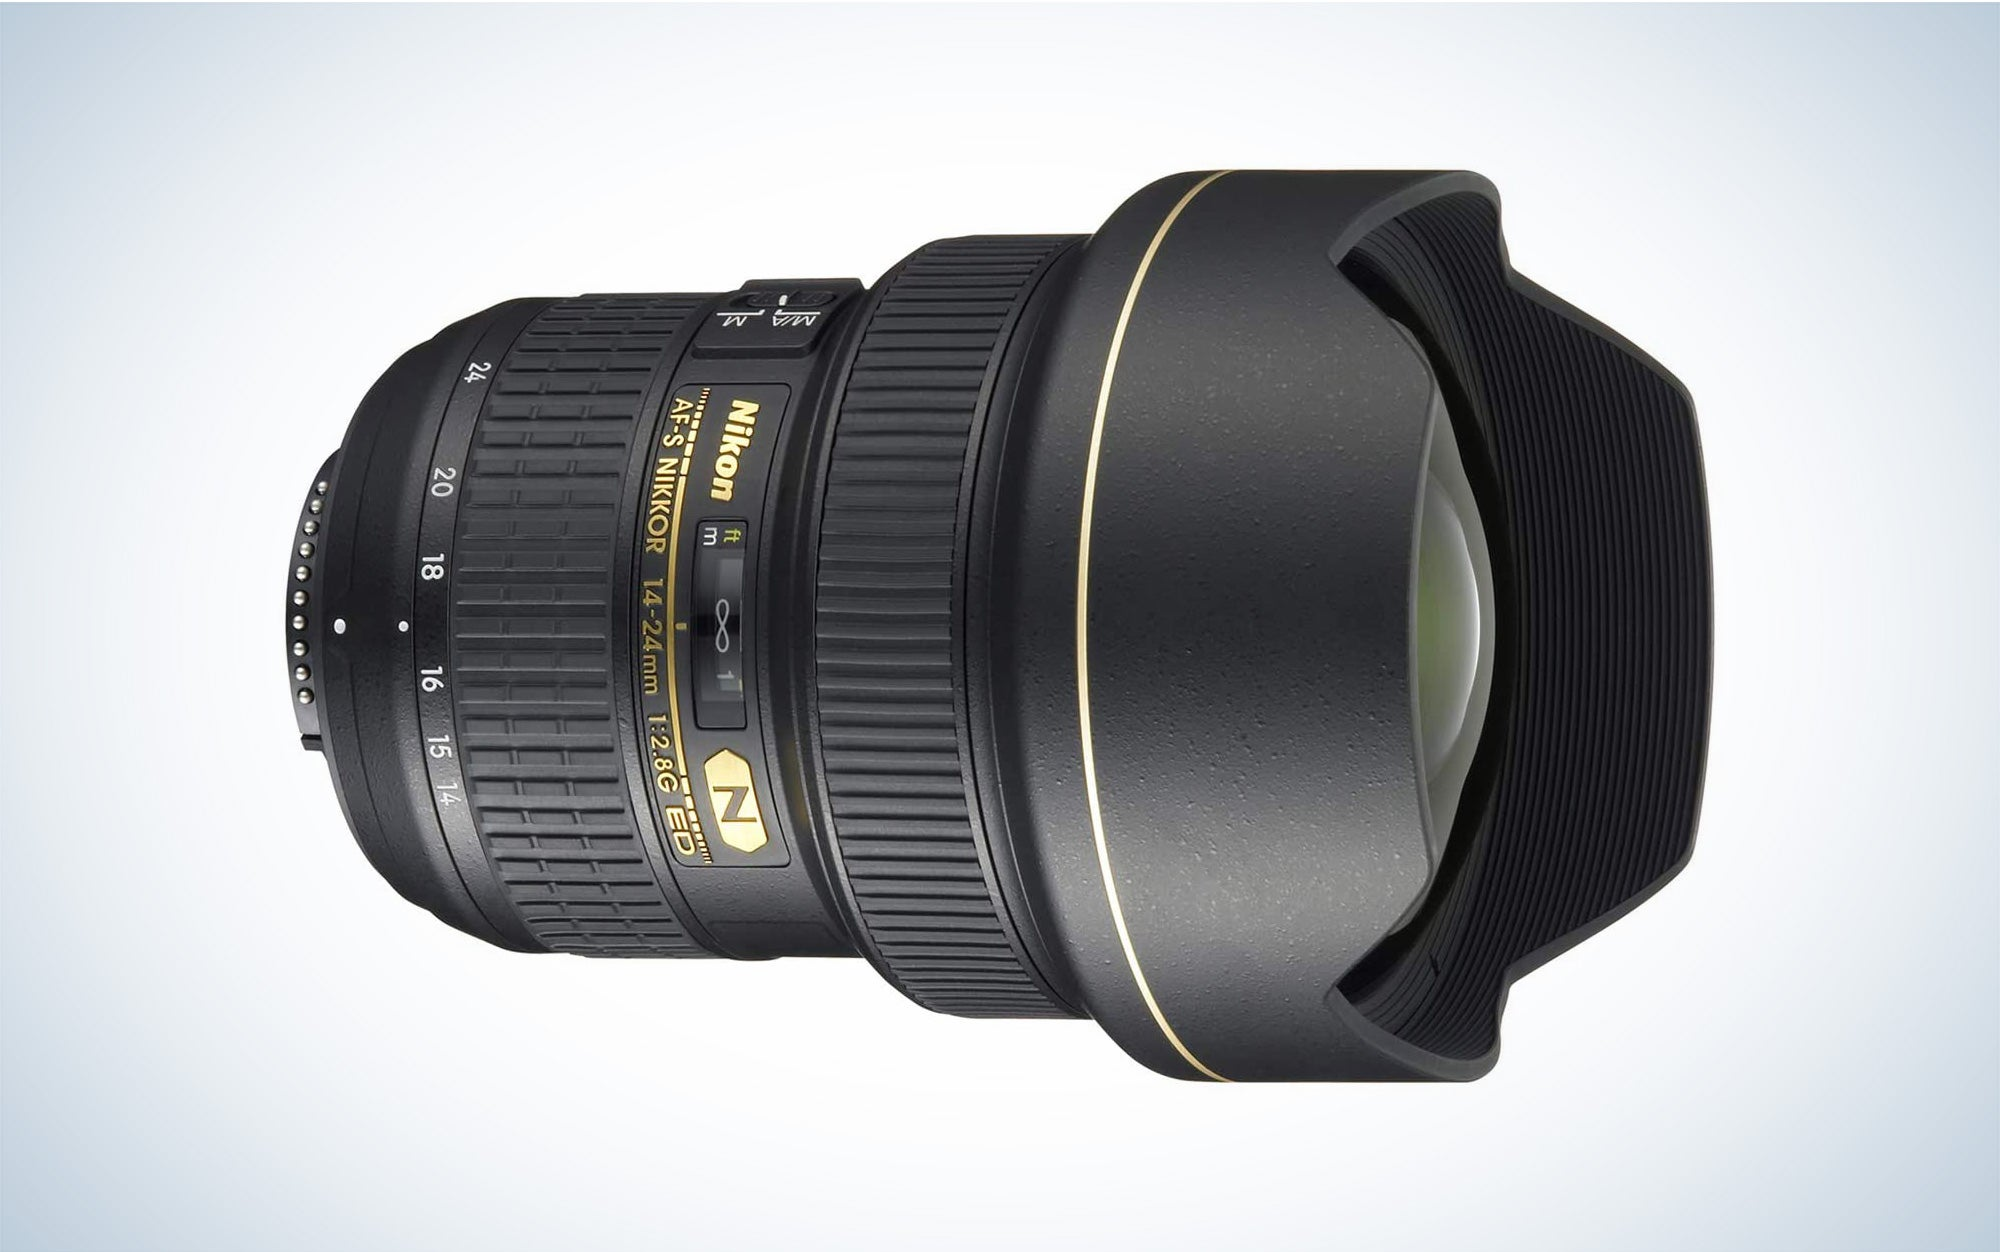 Nikon wide-angle zoom is the best wide angle lens.